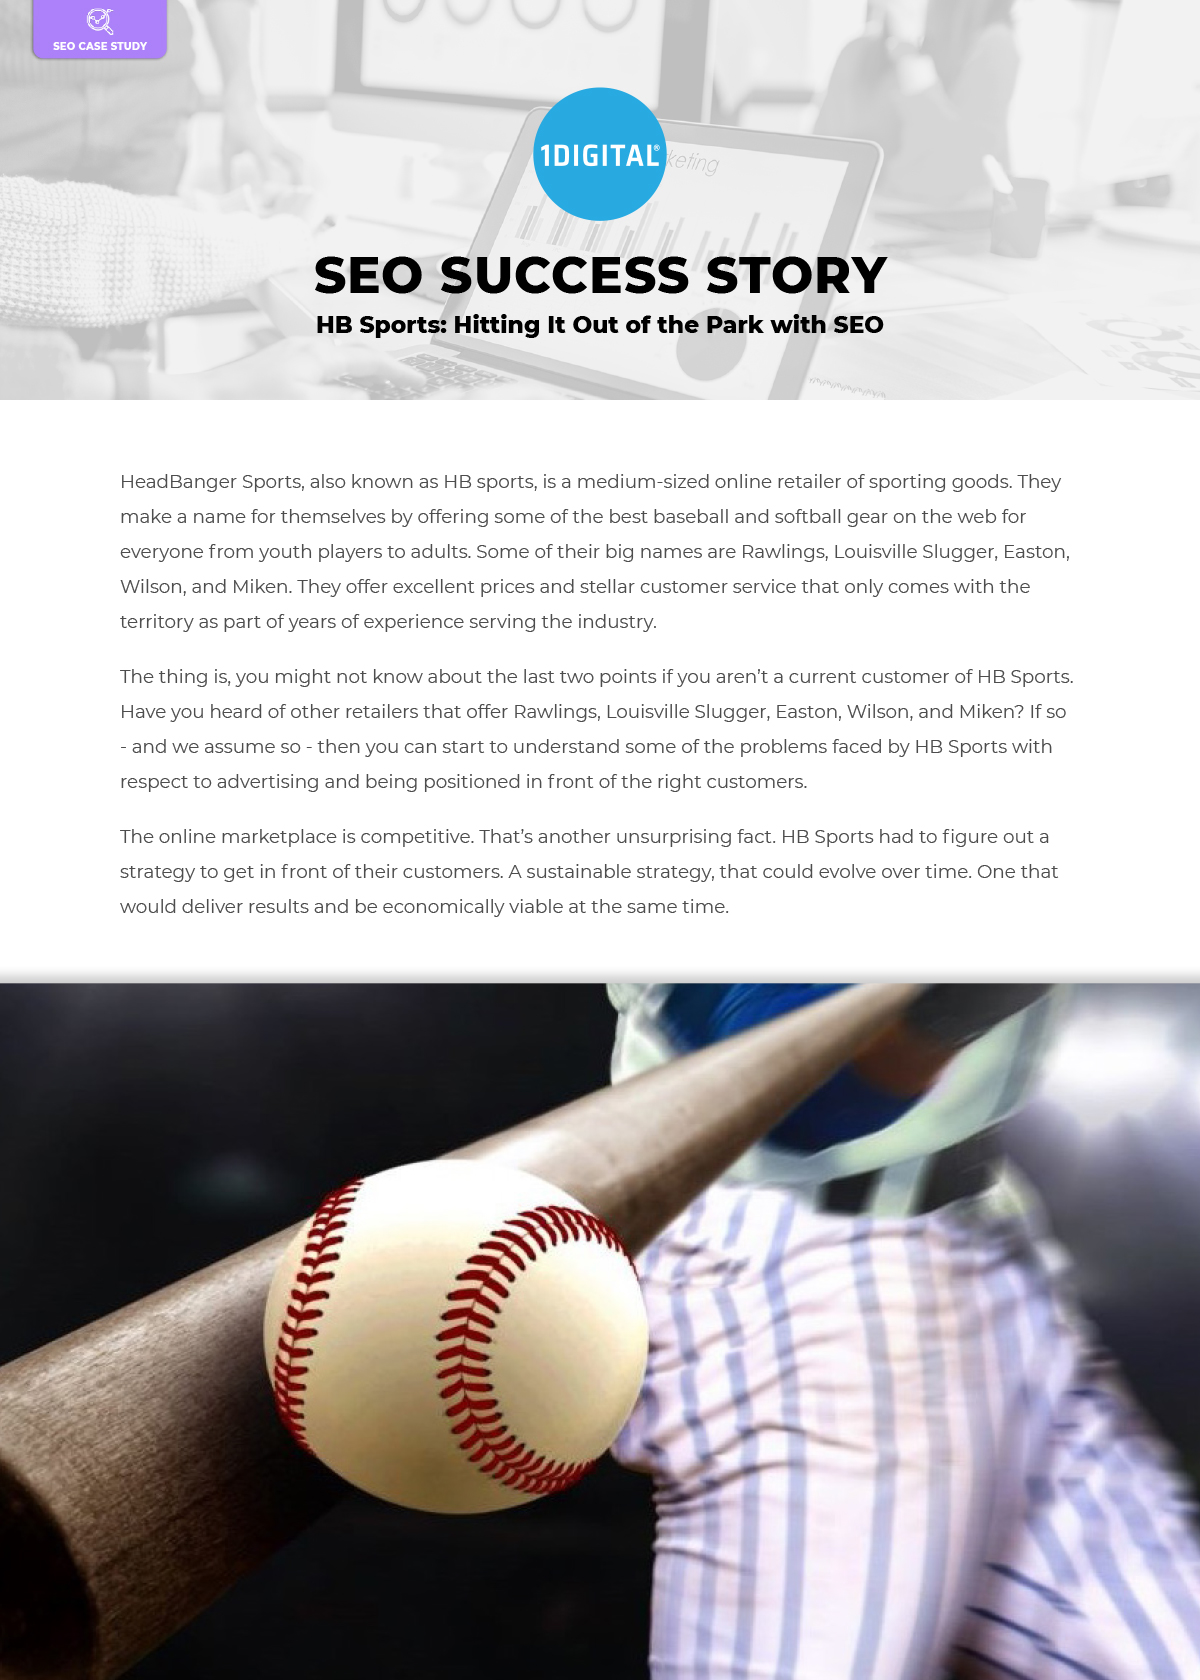 Hitting It Out of the Park with SEO